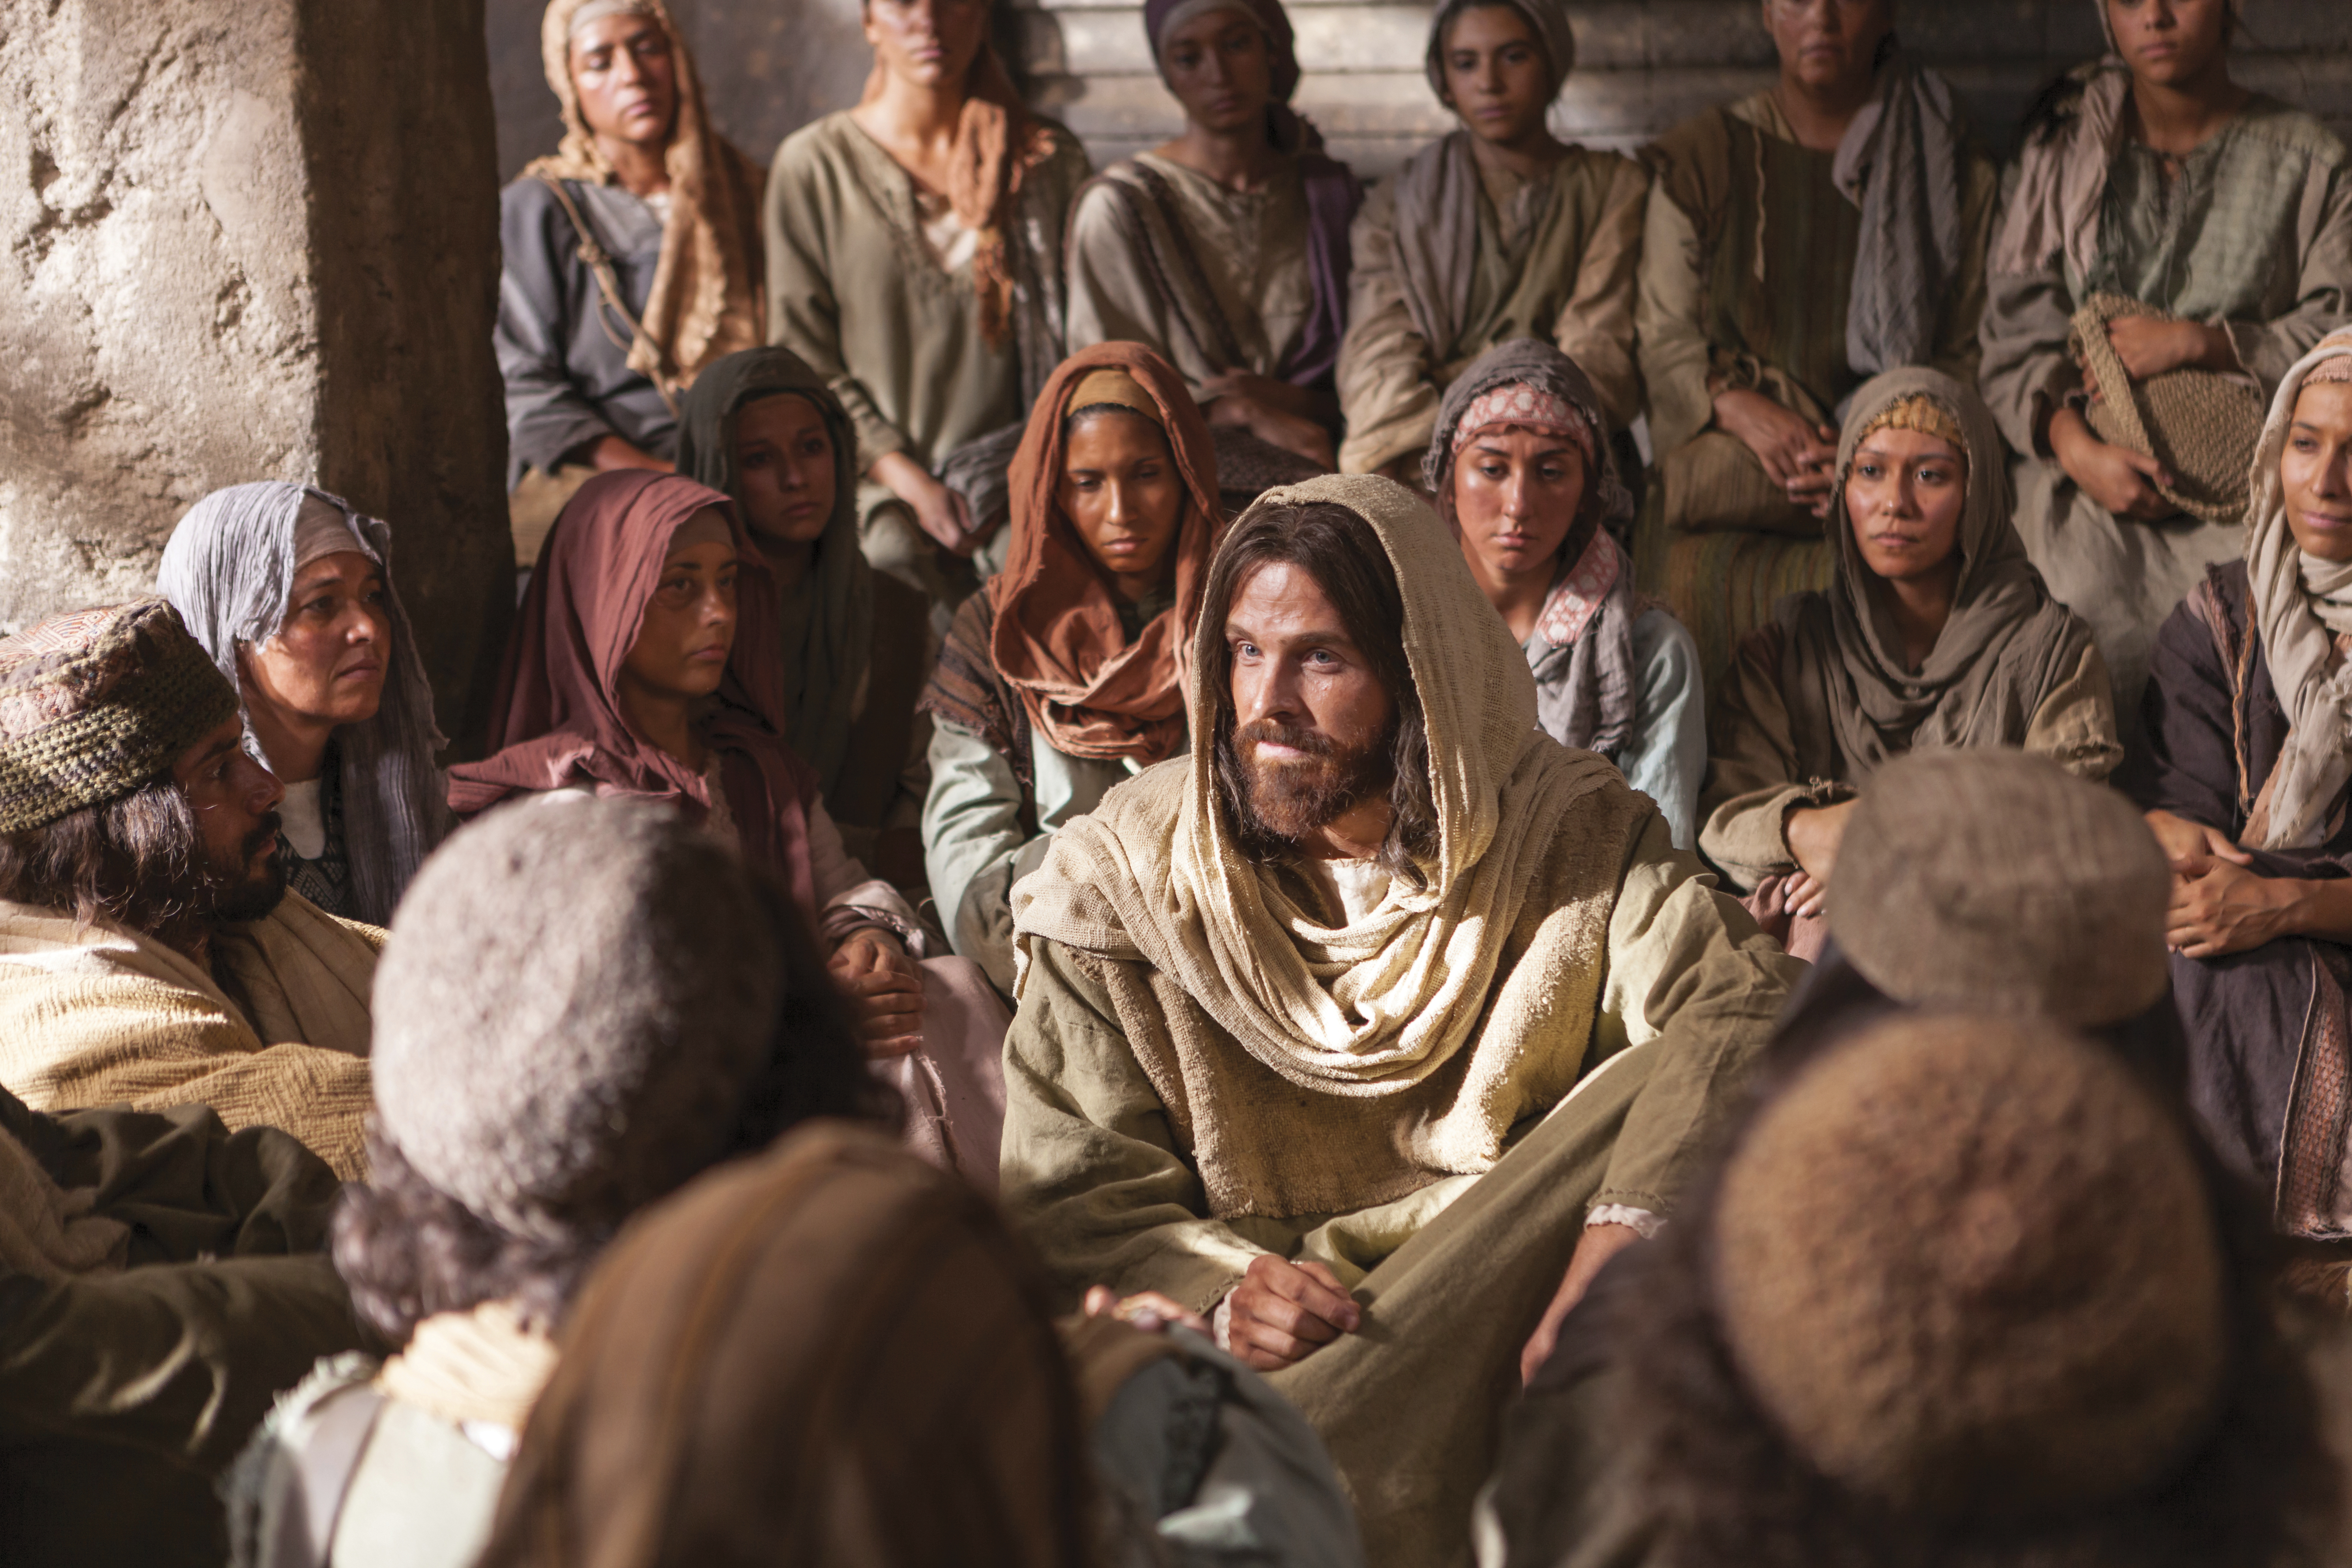 Christ invites others to follow Him.